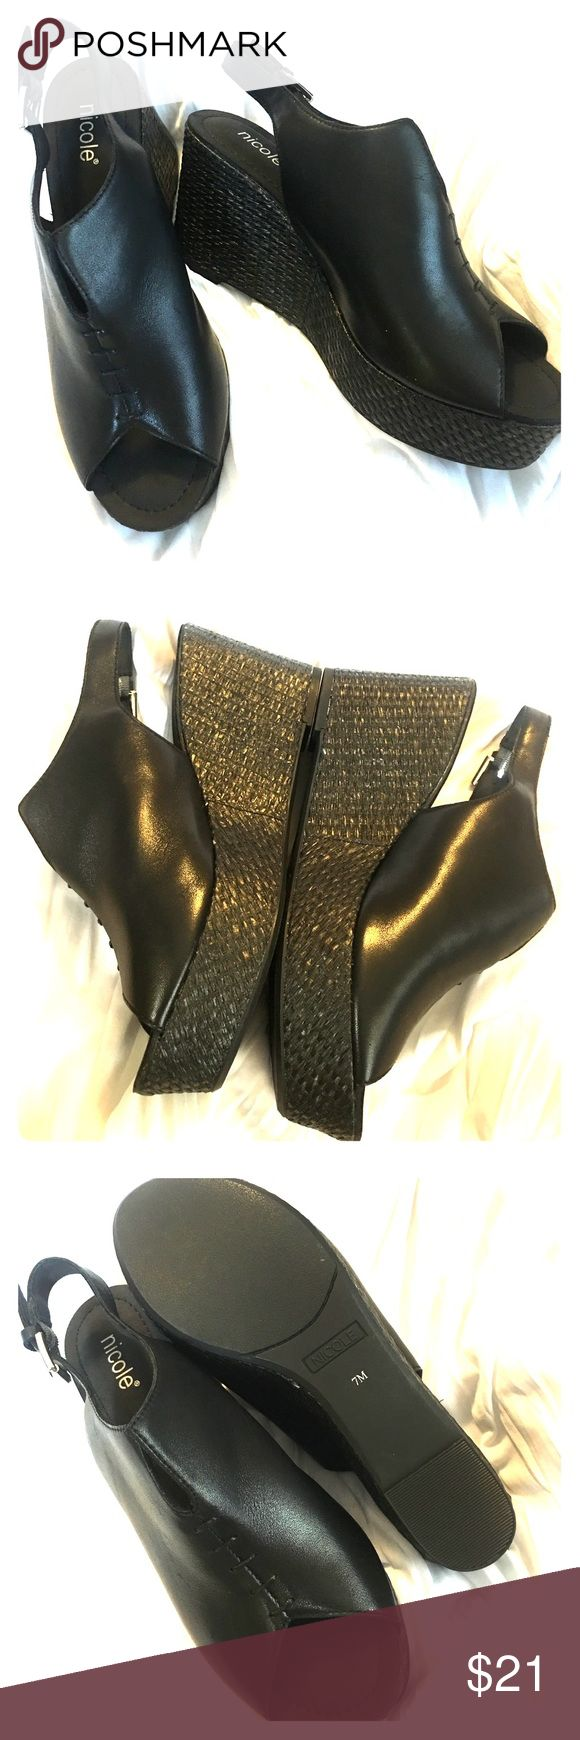 Nicole Black Leather Wedges Nicole Black Leather Wedges. New. Size 7. Ultra Chic for all your black accent outfits. Super cool❤️ Nicole by Nicole Miller Shoes